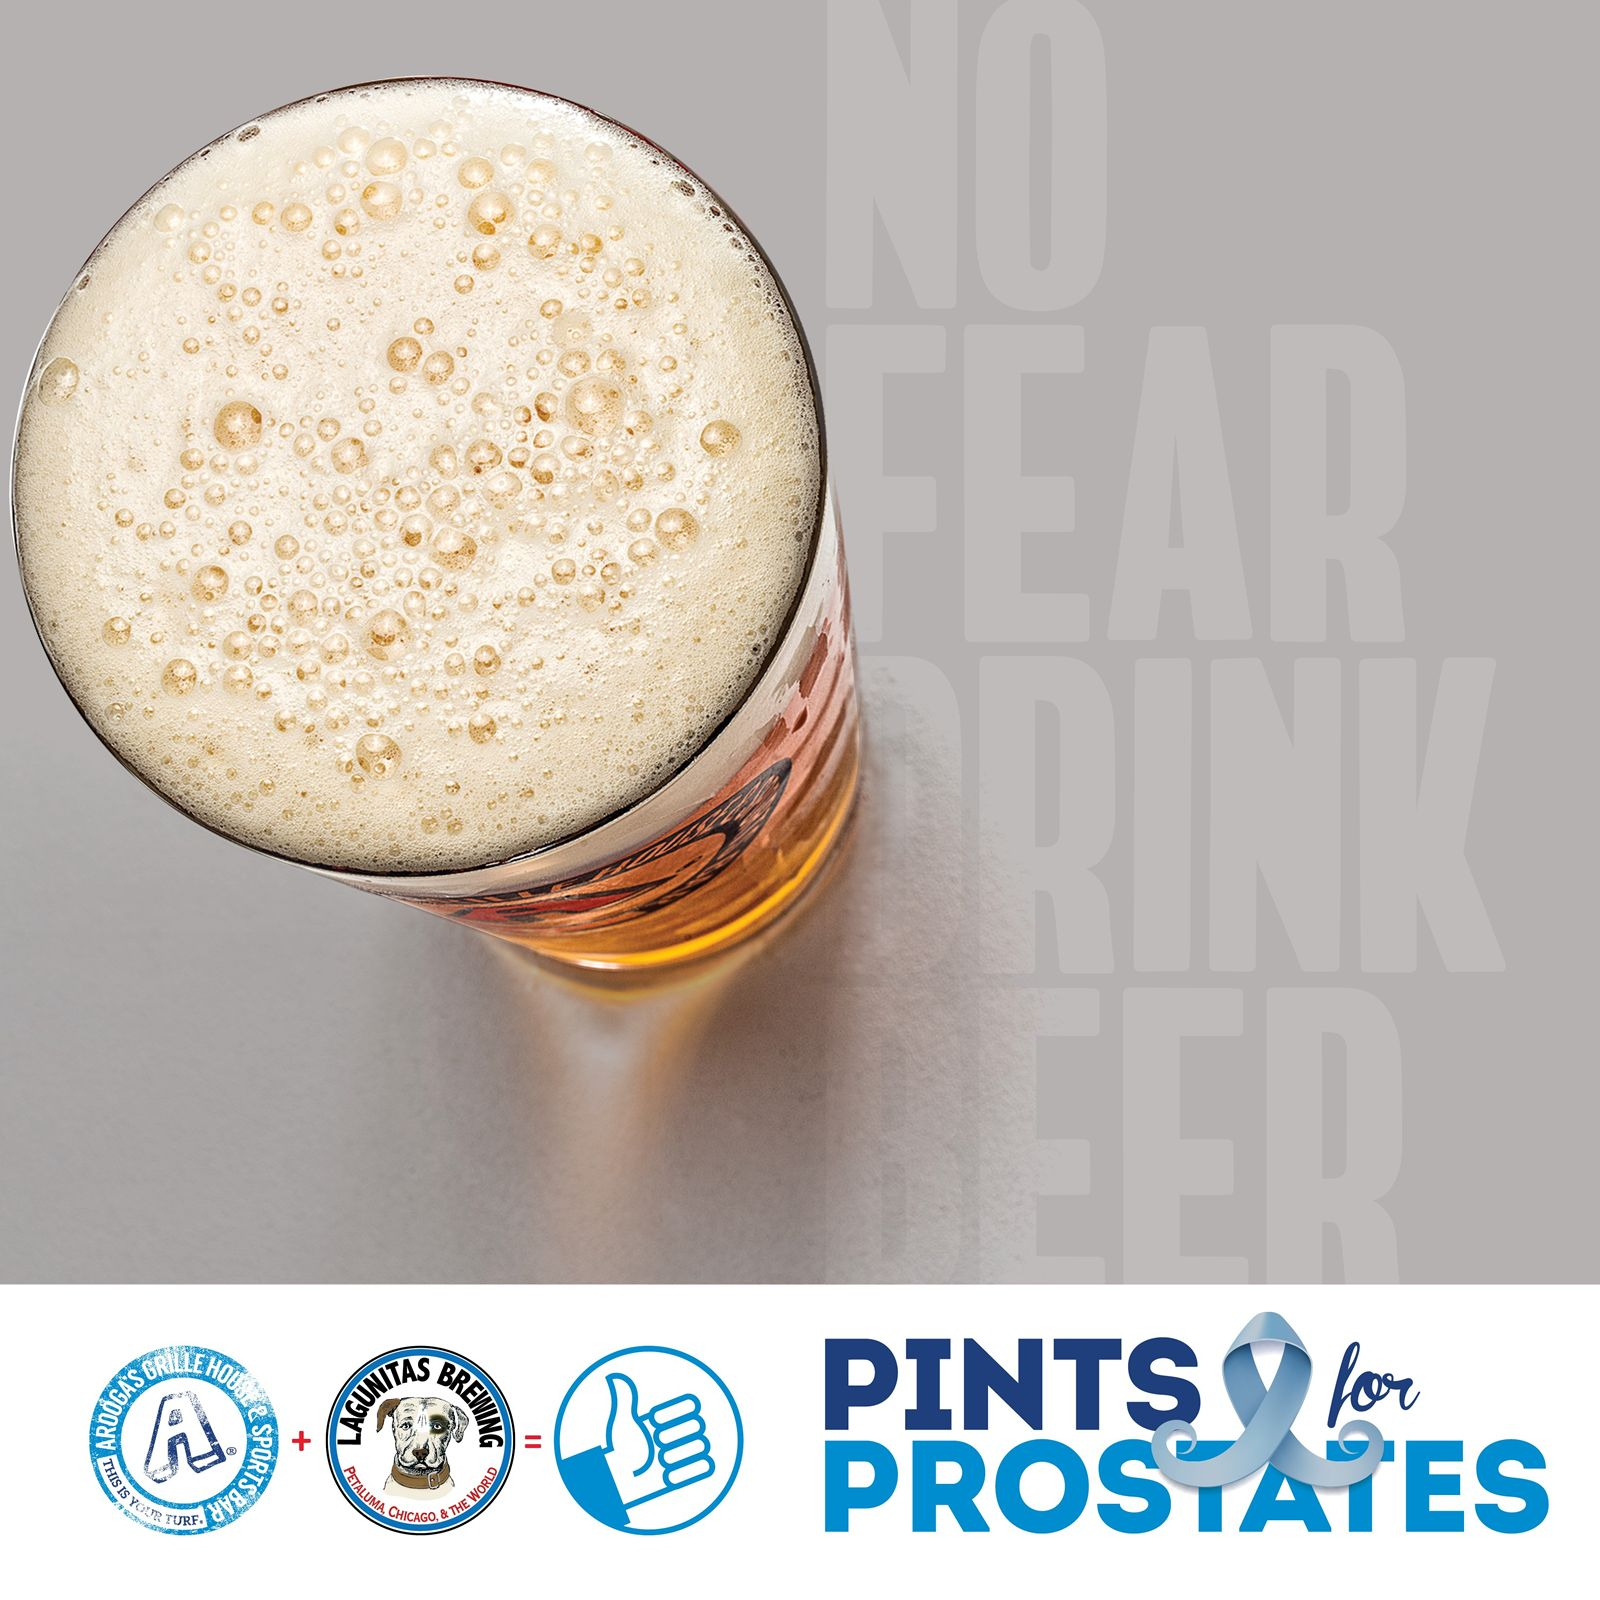 Arooga's Celebrates NovemBeer with Pints for Prostates